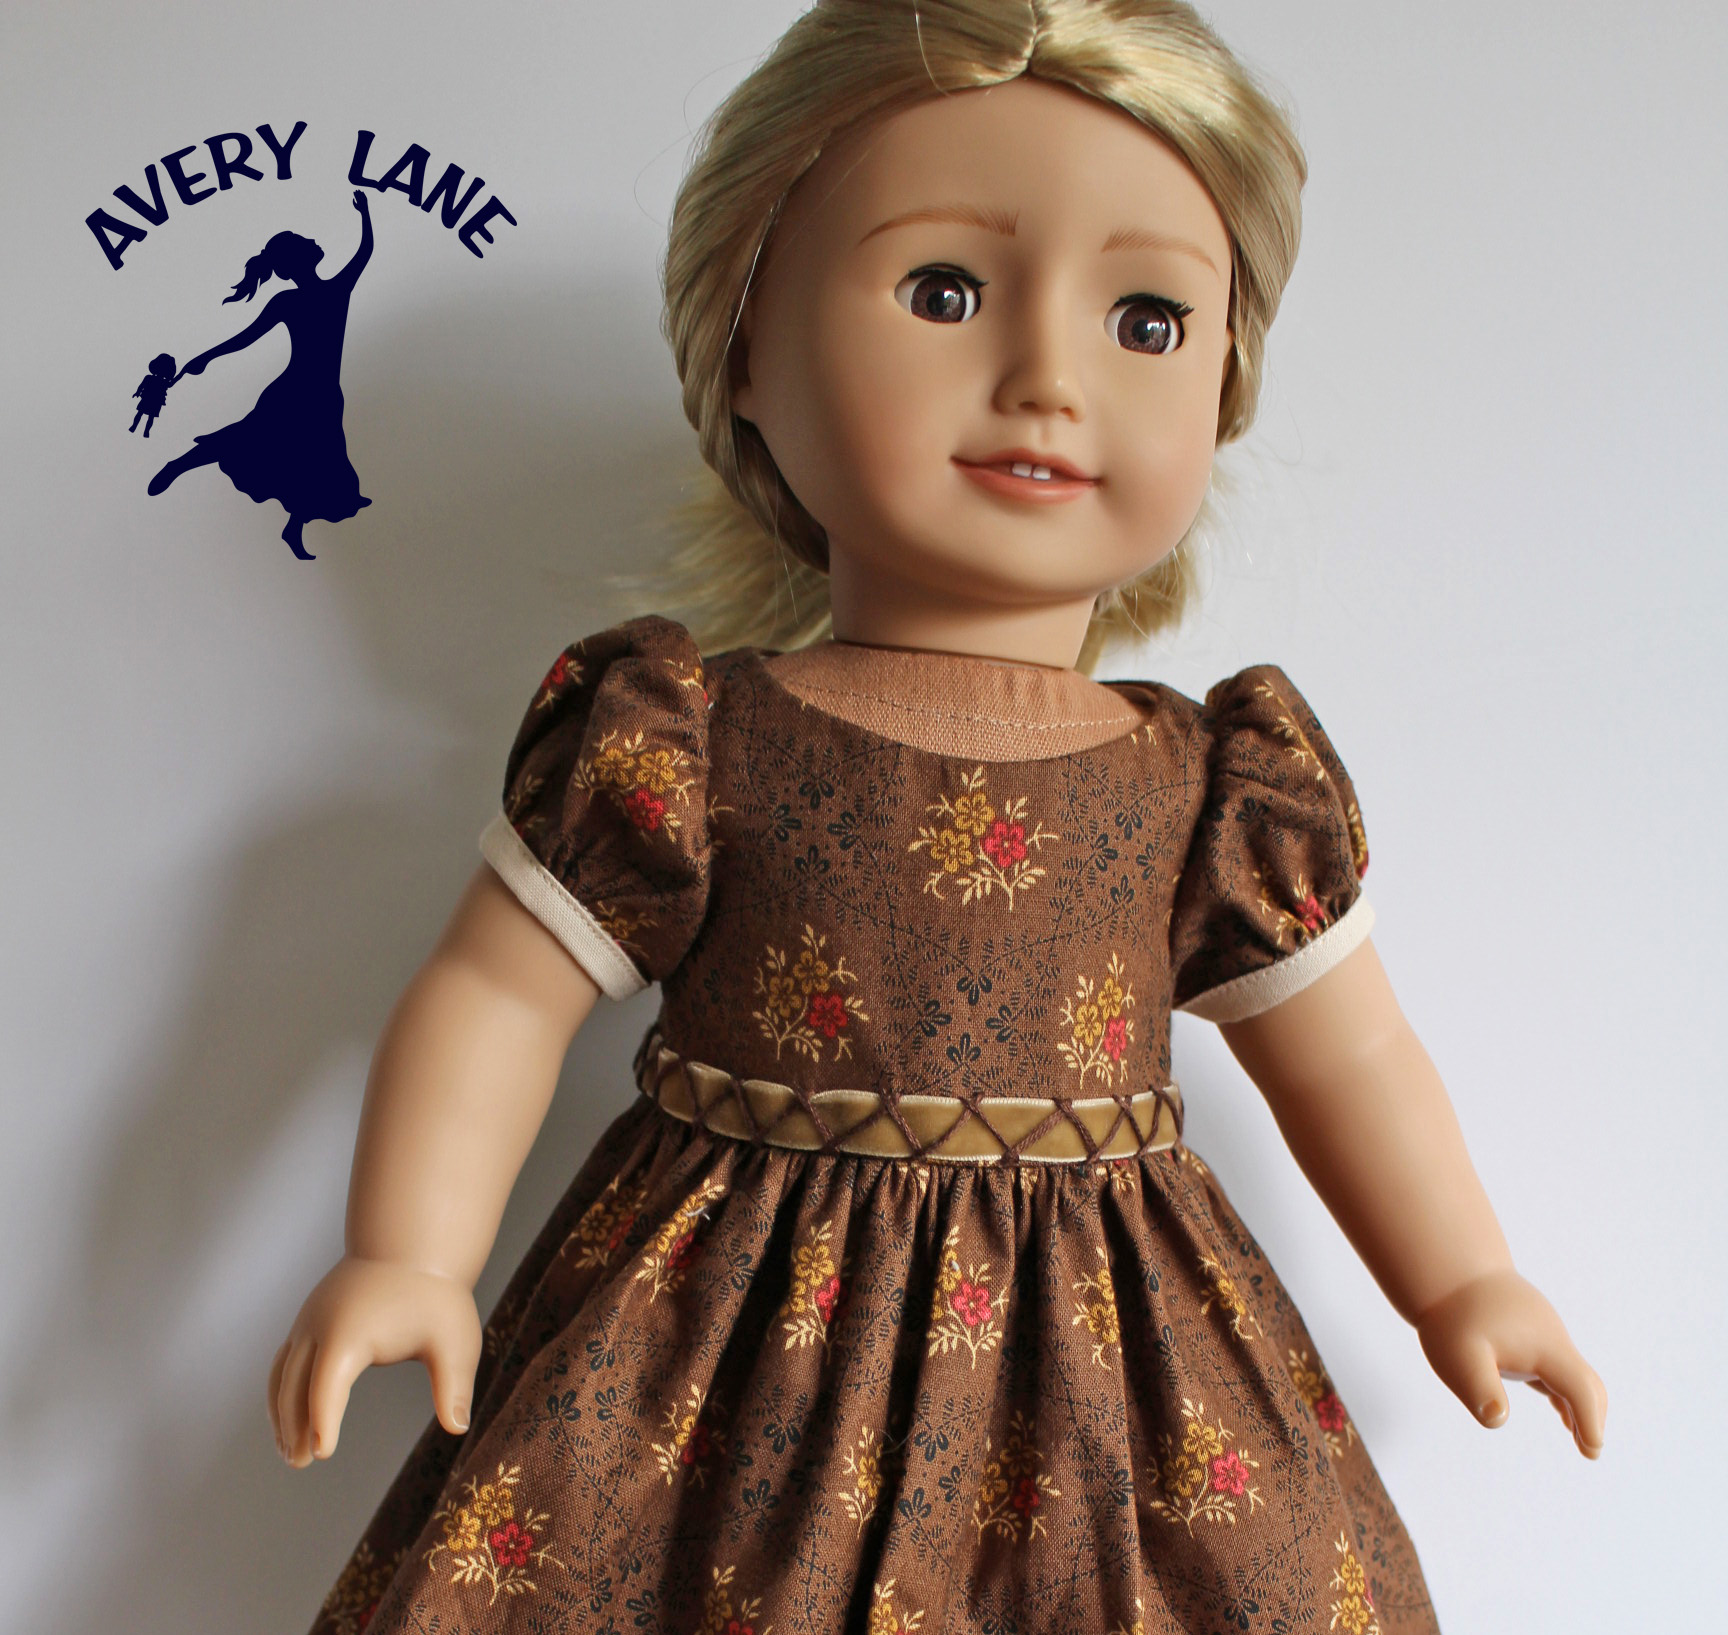 c5f4fa76d Florrie 18 inch Doll Review compared to American Girl Dolls